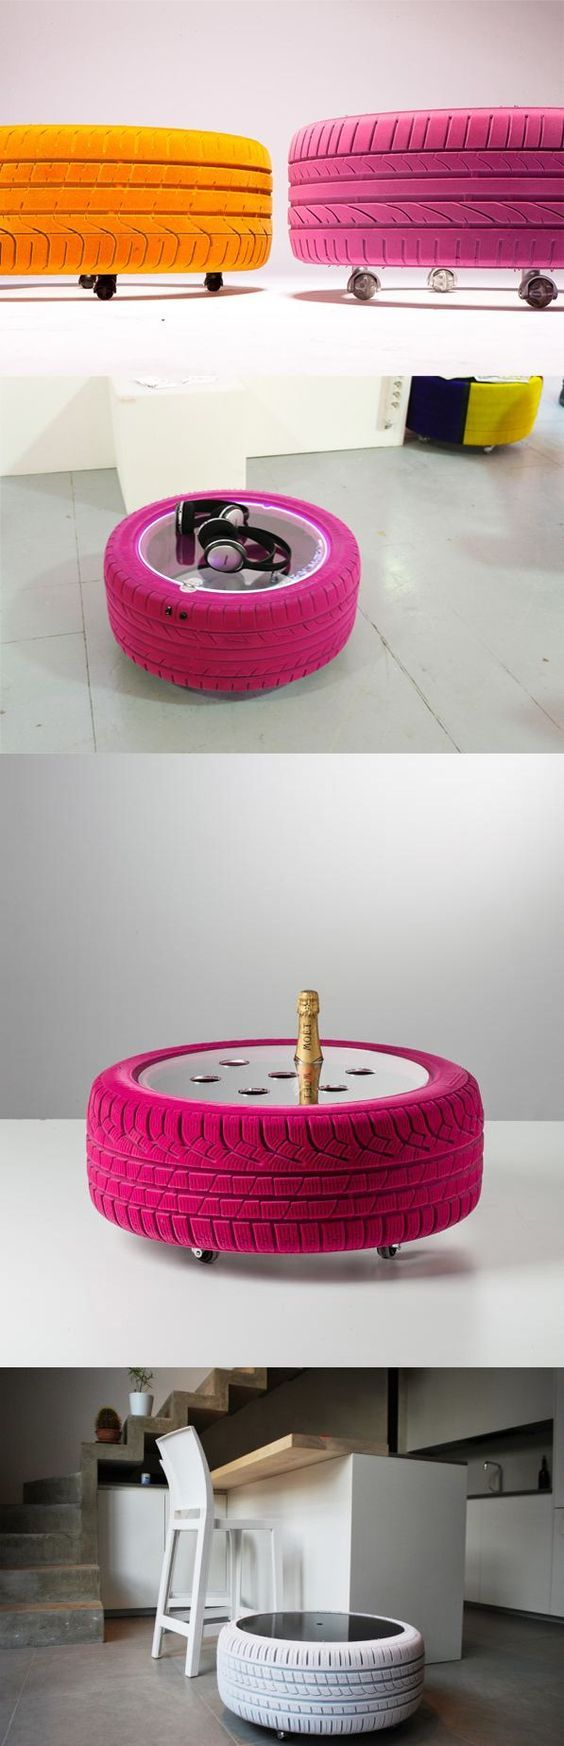 25 unique tire seats ideas on pinterest tyres recycle tyre companies and tire chairs